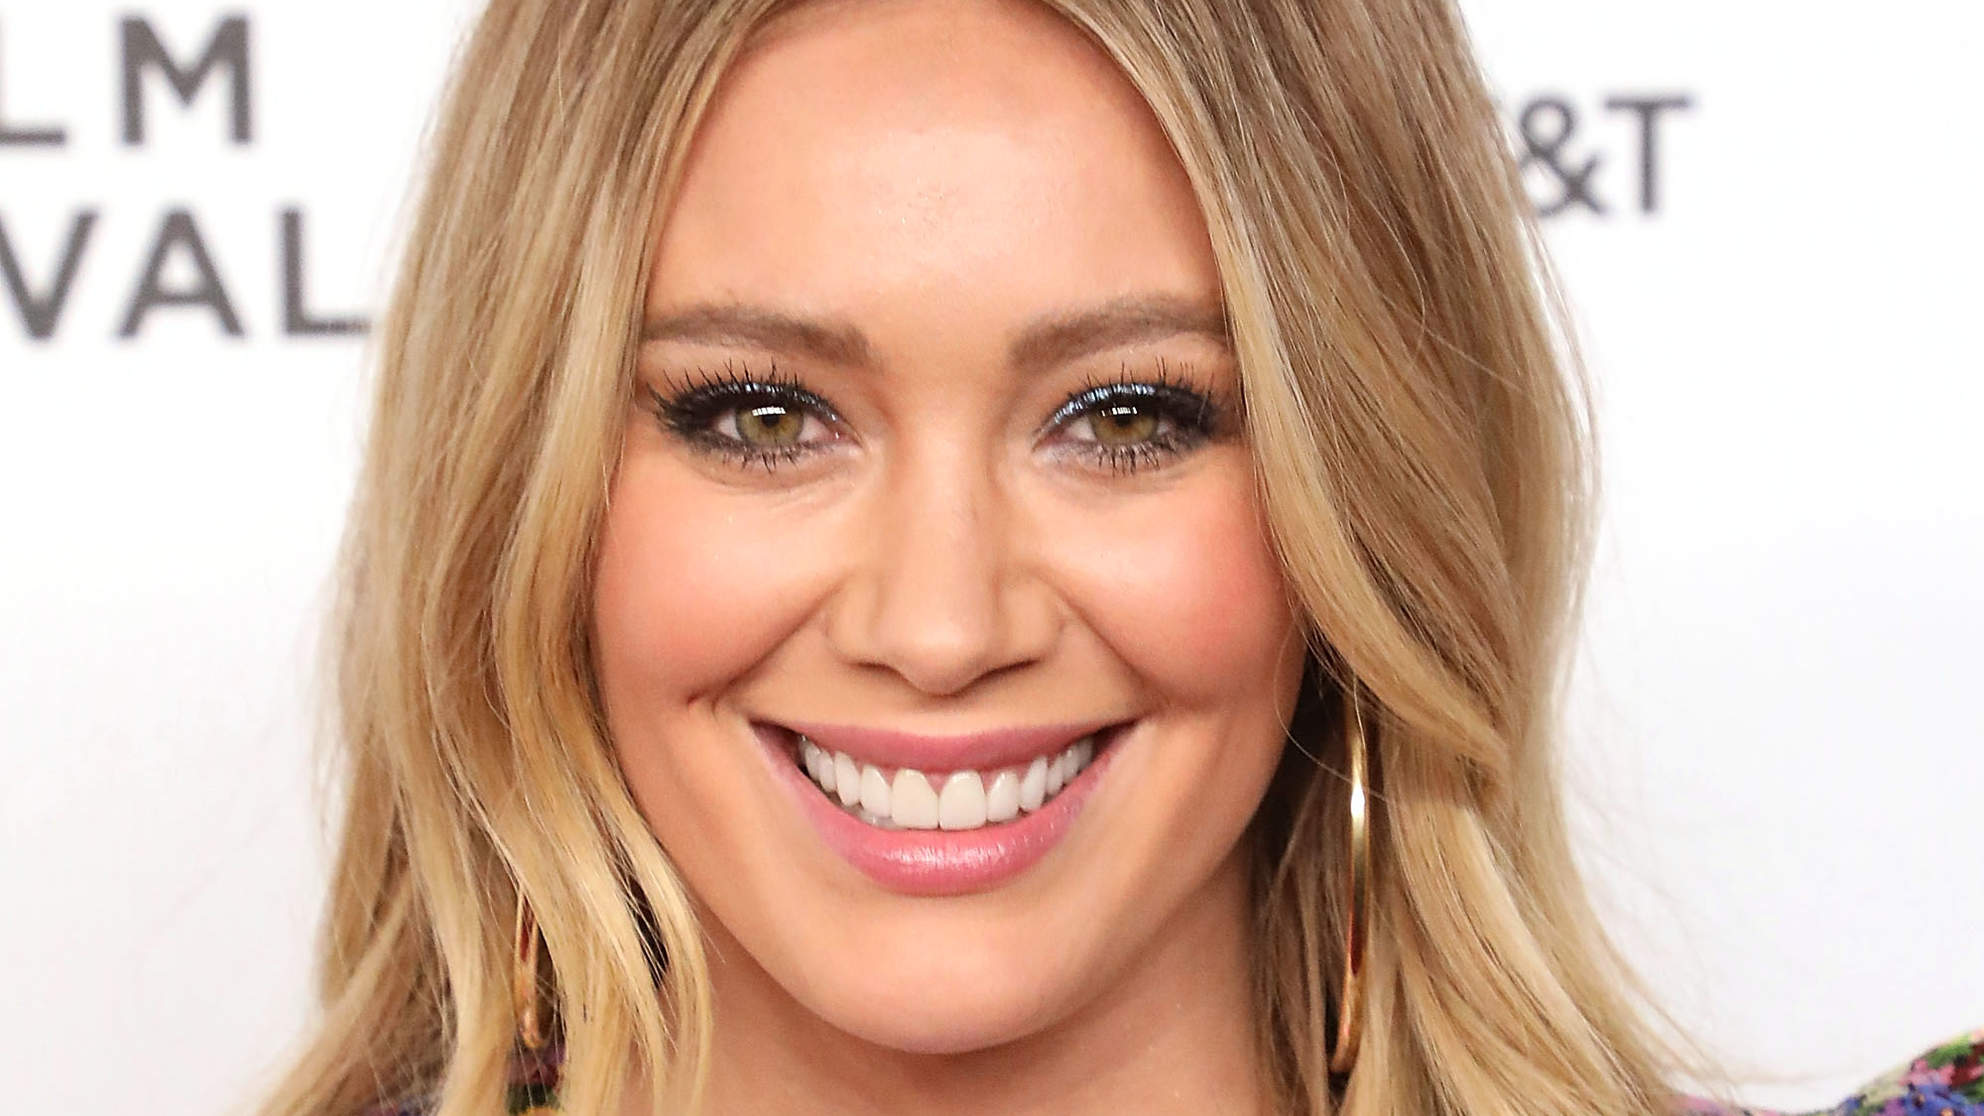 Hilary Duff Just Got the '70s Haircut You're About to See Everywhere This Summer